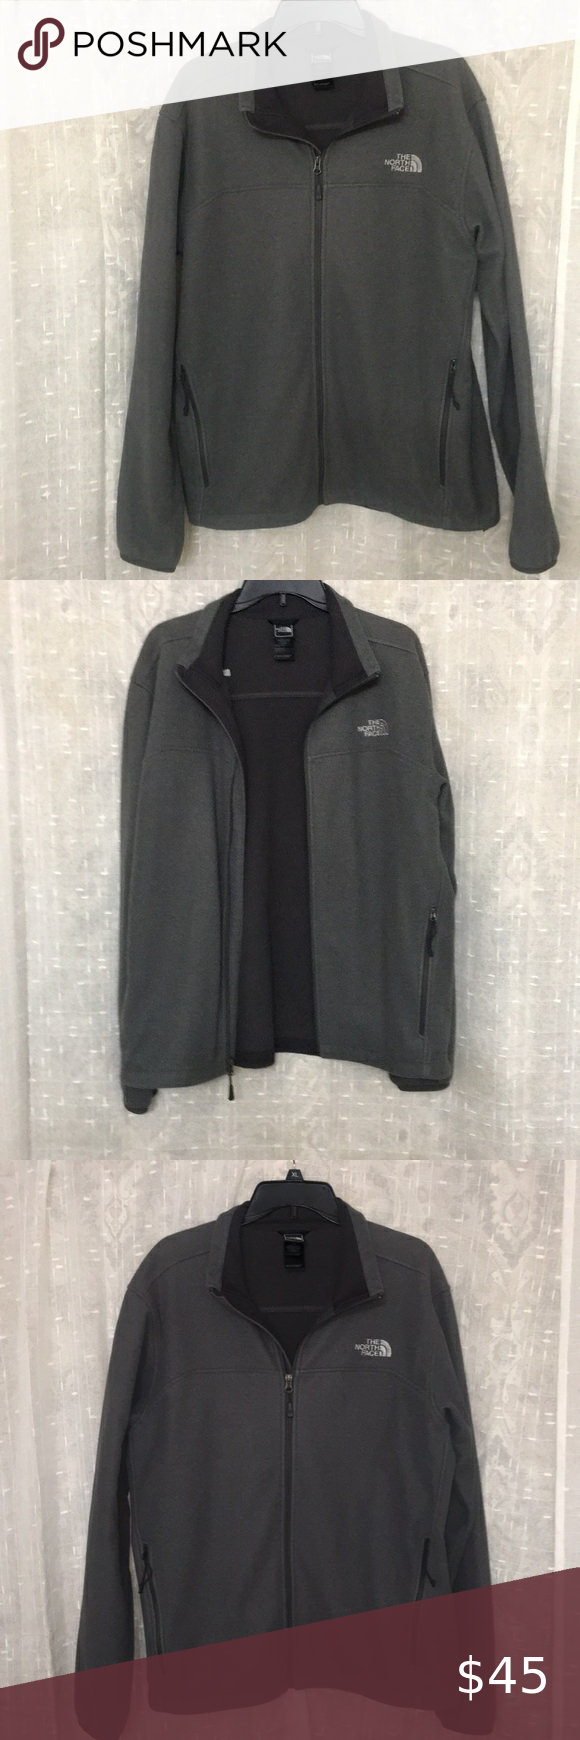 The North Face Mens Jacket Mens Size Large Great Used Condition The North Face Jackets Coats North Face Jacket Mens The North Face North Face Mens [ 1740 x 580 Pixel ]